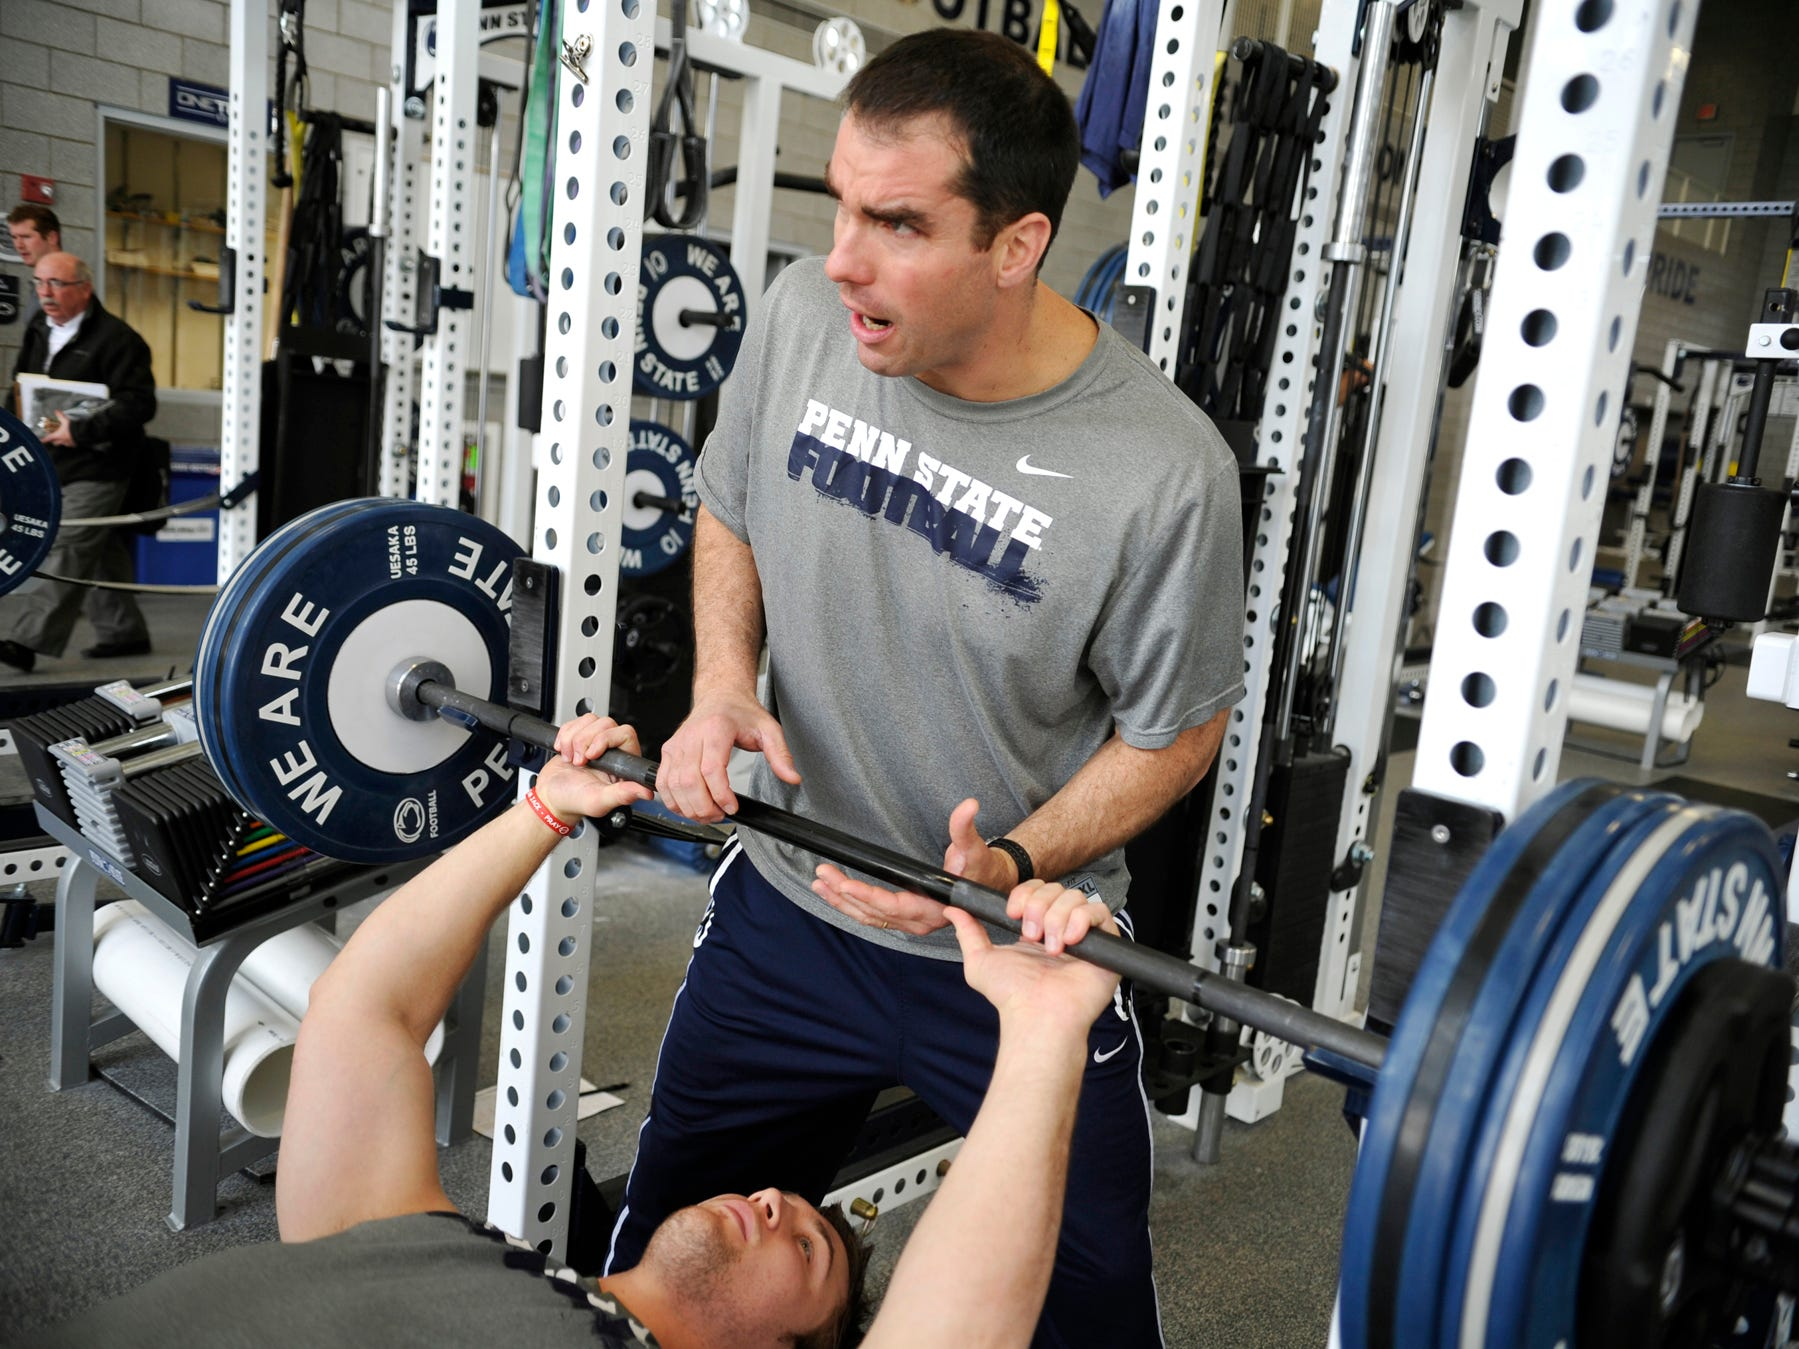 Well-liked Craig Fitzgerald, Penn State's strength and conditioning leader, is joining Bill O'Brien in Houston.